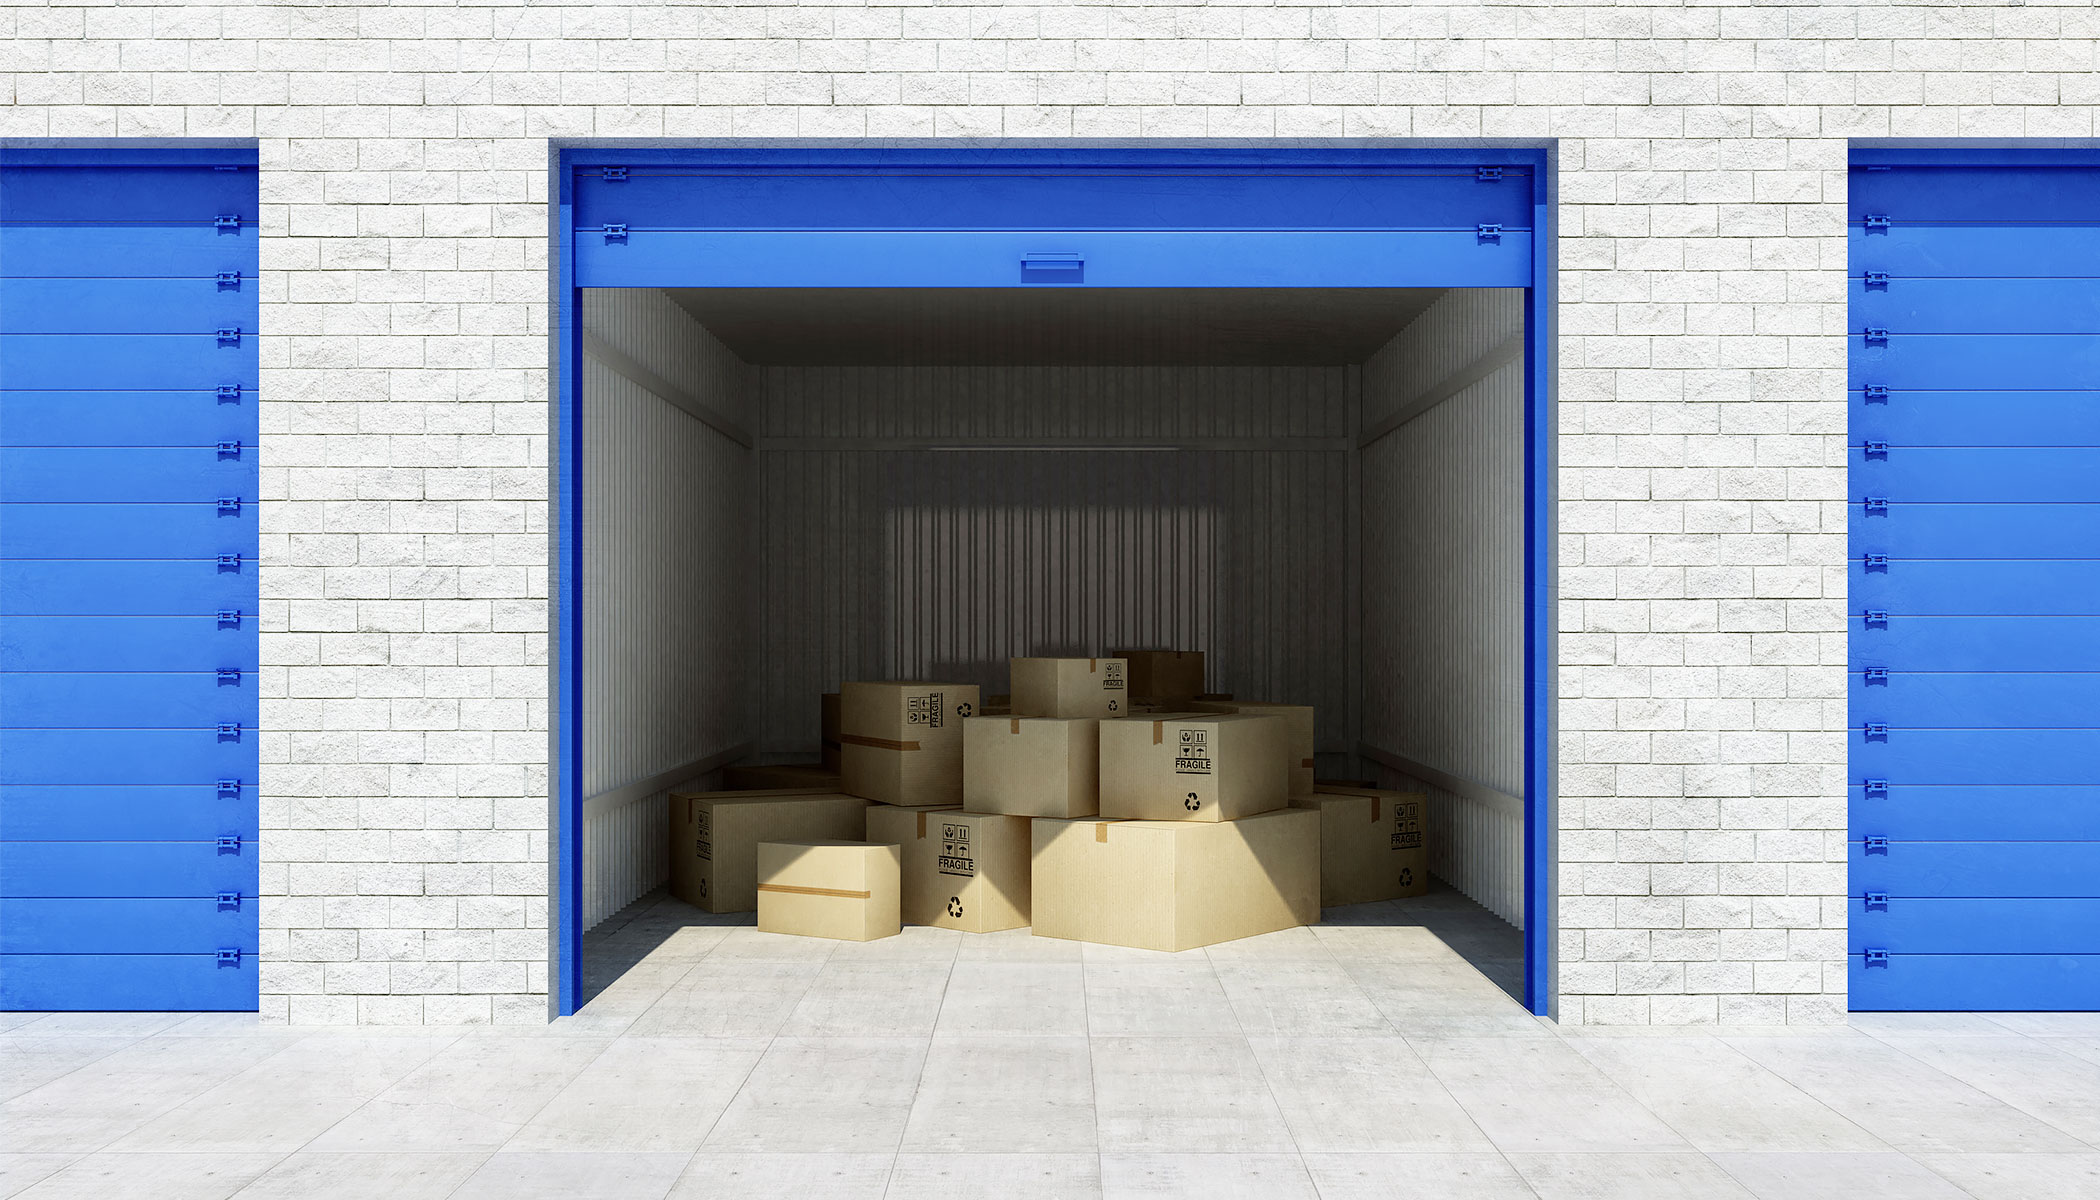 Tips to Avoid Rodent Infestations in Self-Storage Lockers